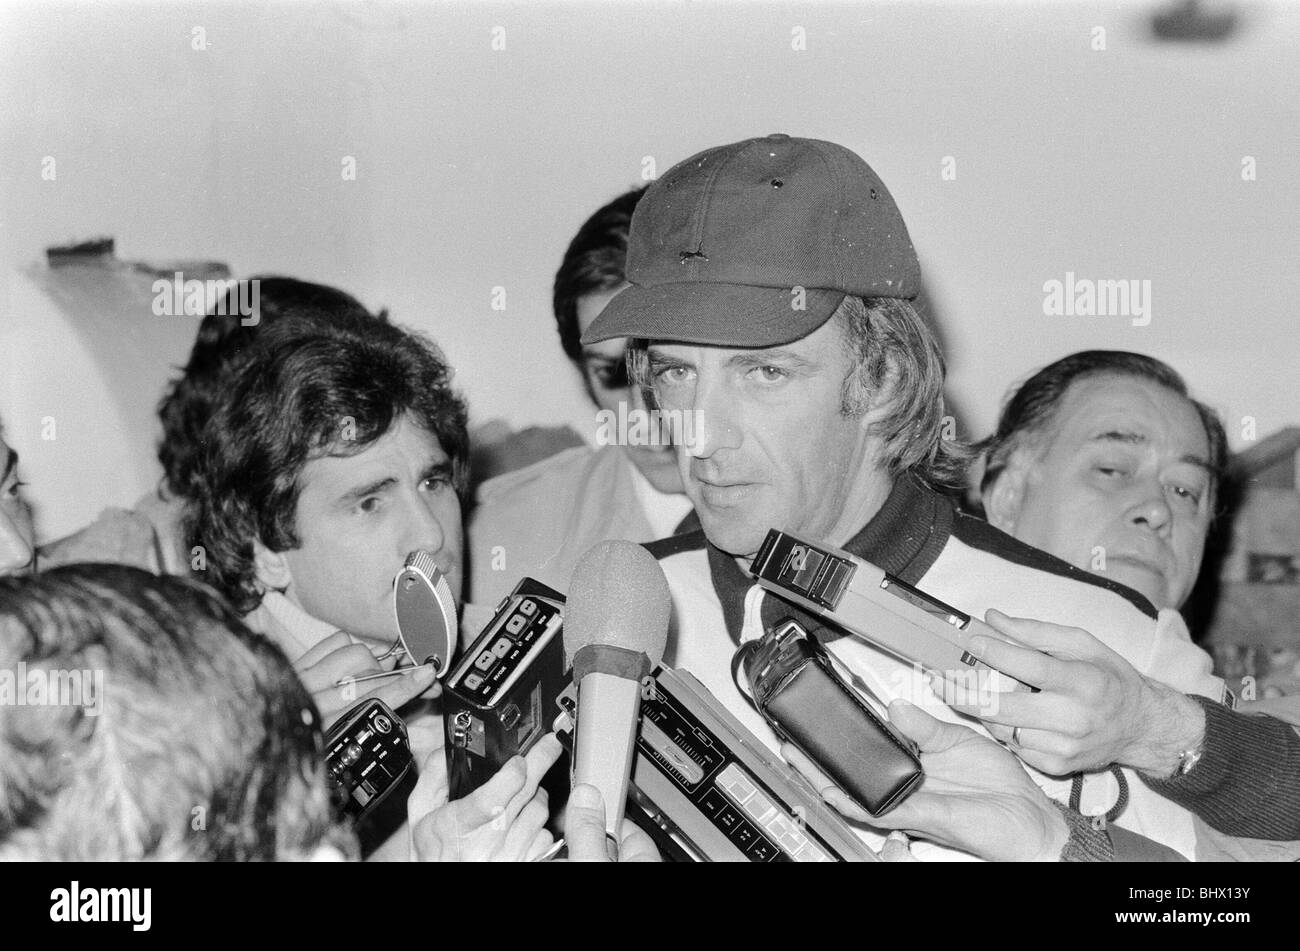 1978 World Cup Final in Buenos Aires, Argentina. Argentina 3 v Holland 1. Argentina manager Cesar Luis Menotti speaking - Stock Image